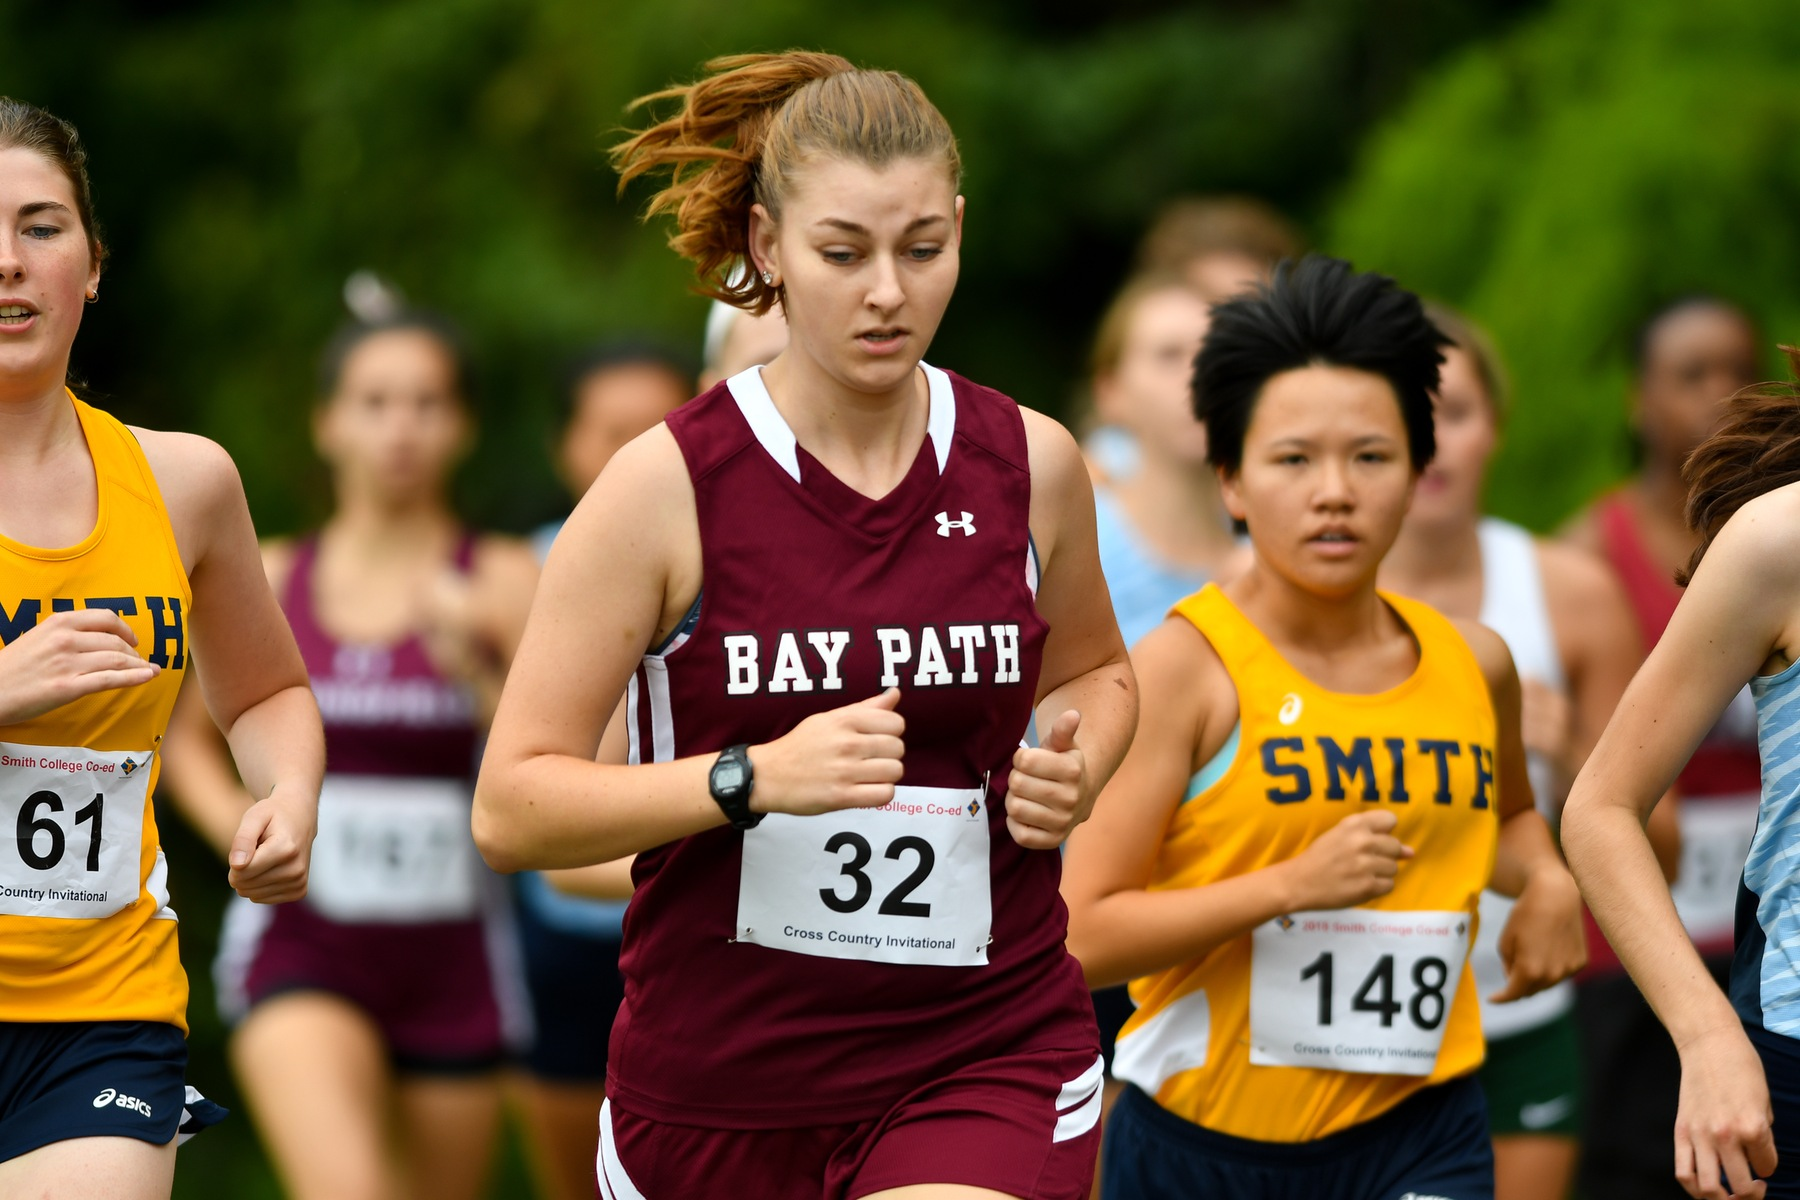 Bay Path runs in James Early Invitational 5K Race